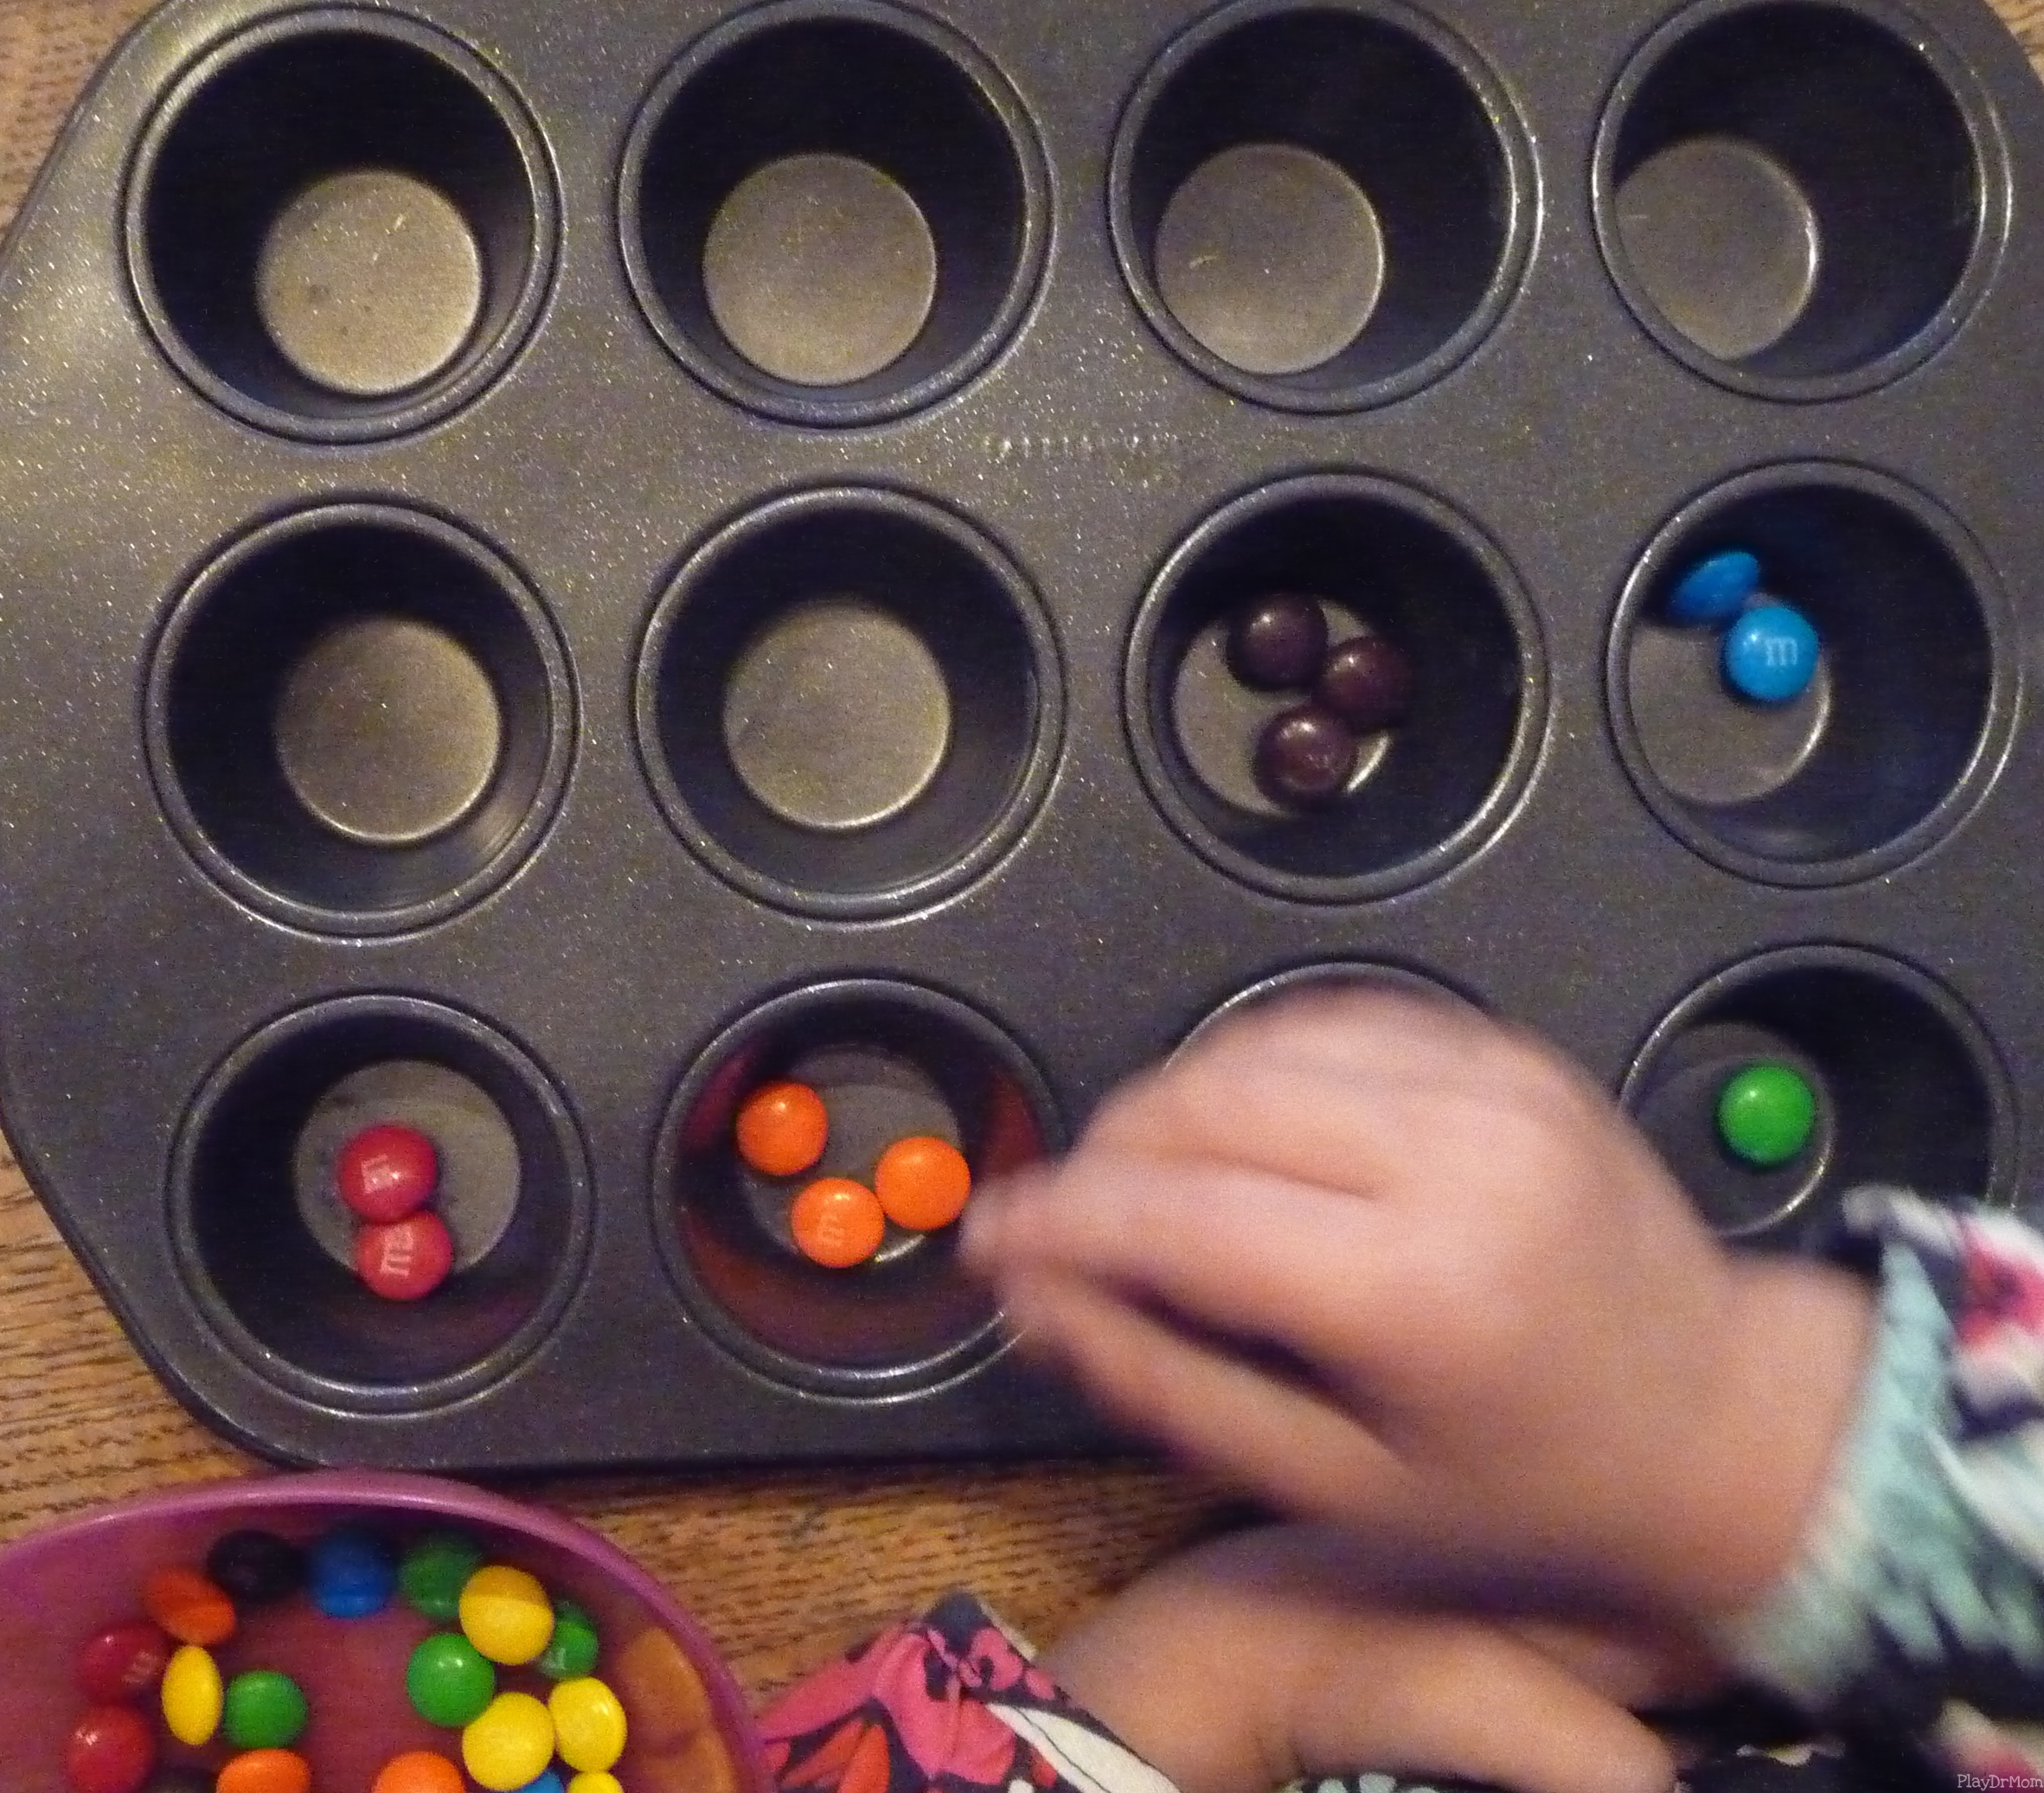 Color sorting m&m's